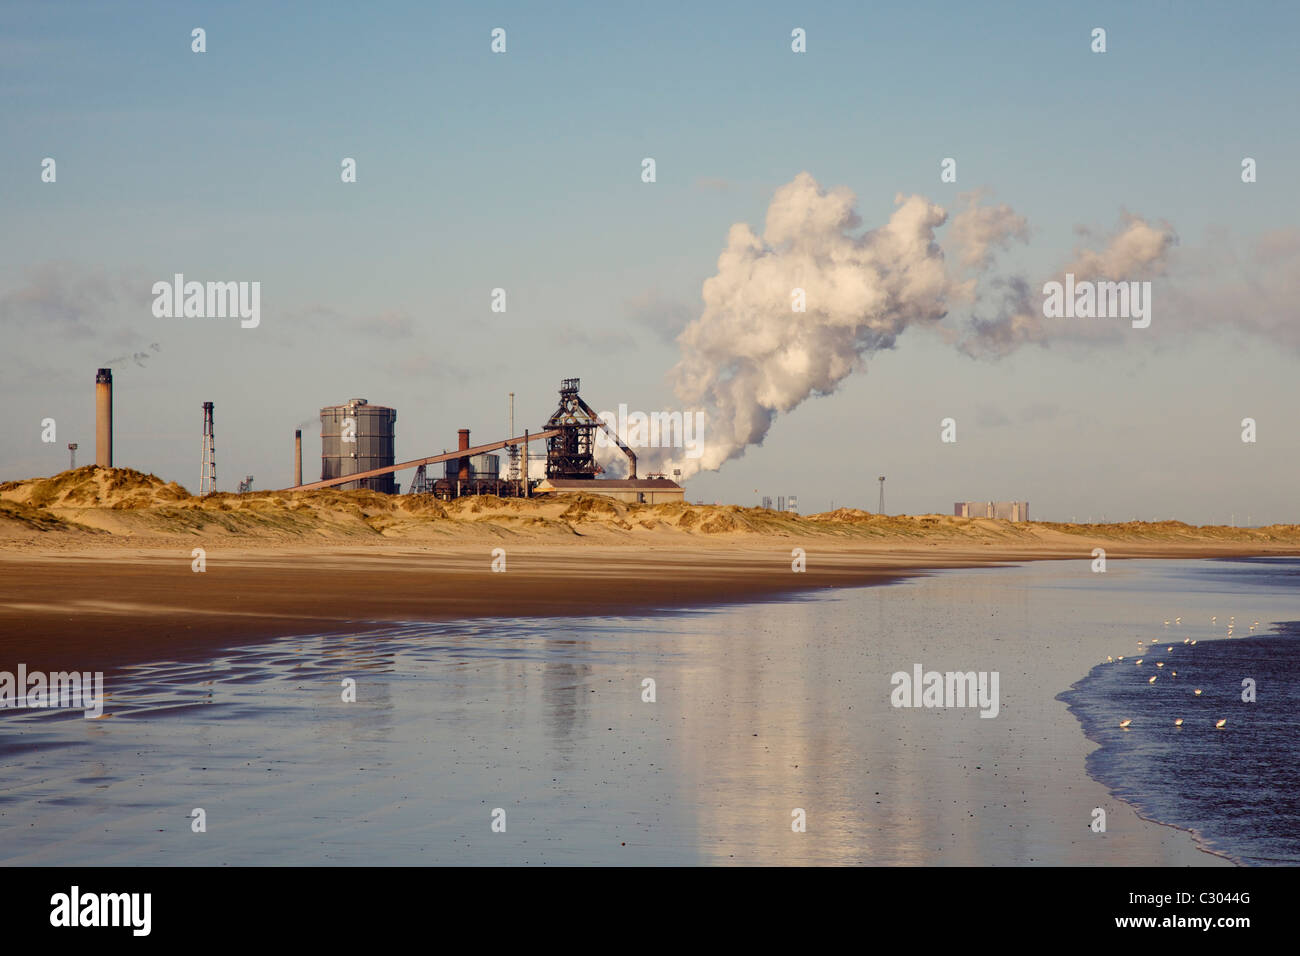 Steelworks at Redcar with steam and reflection in sea - Stock Image